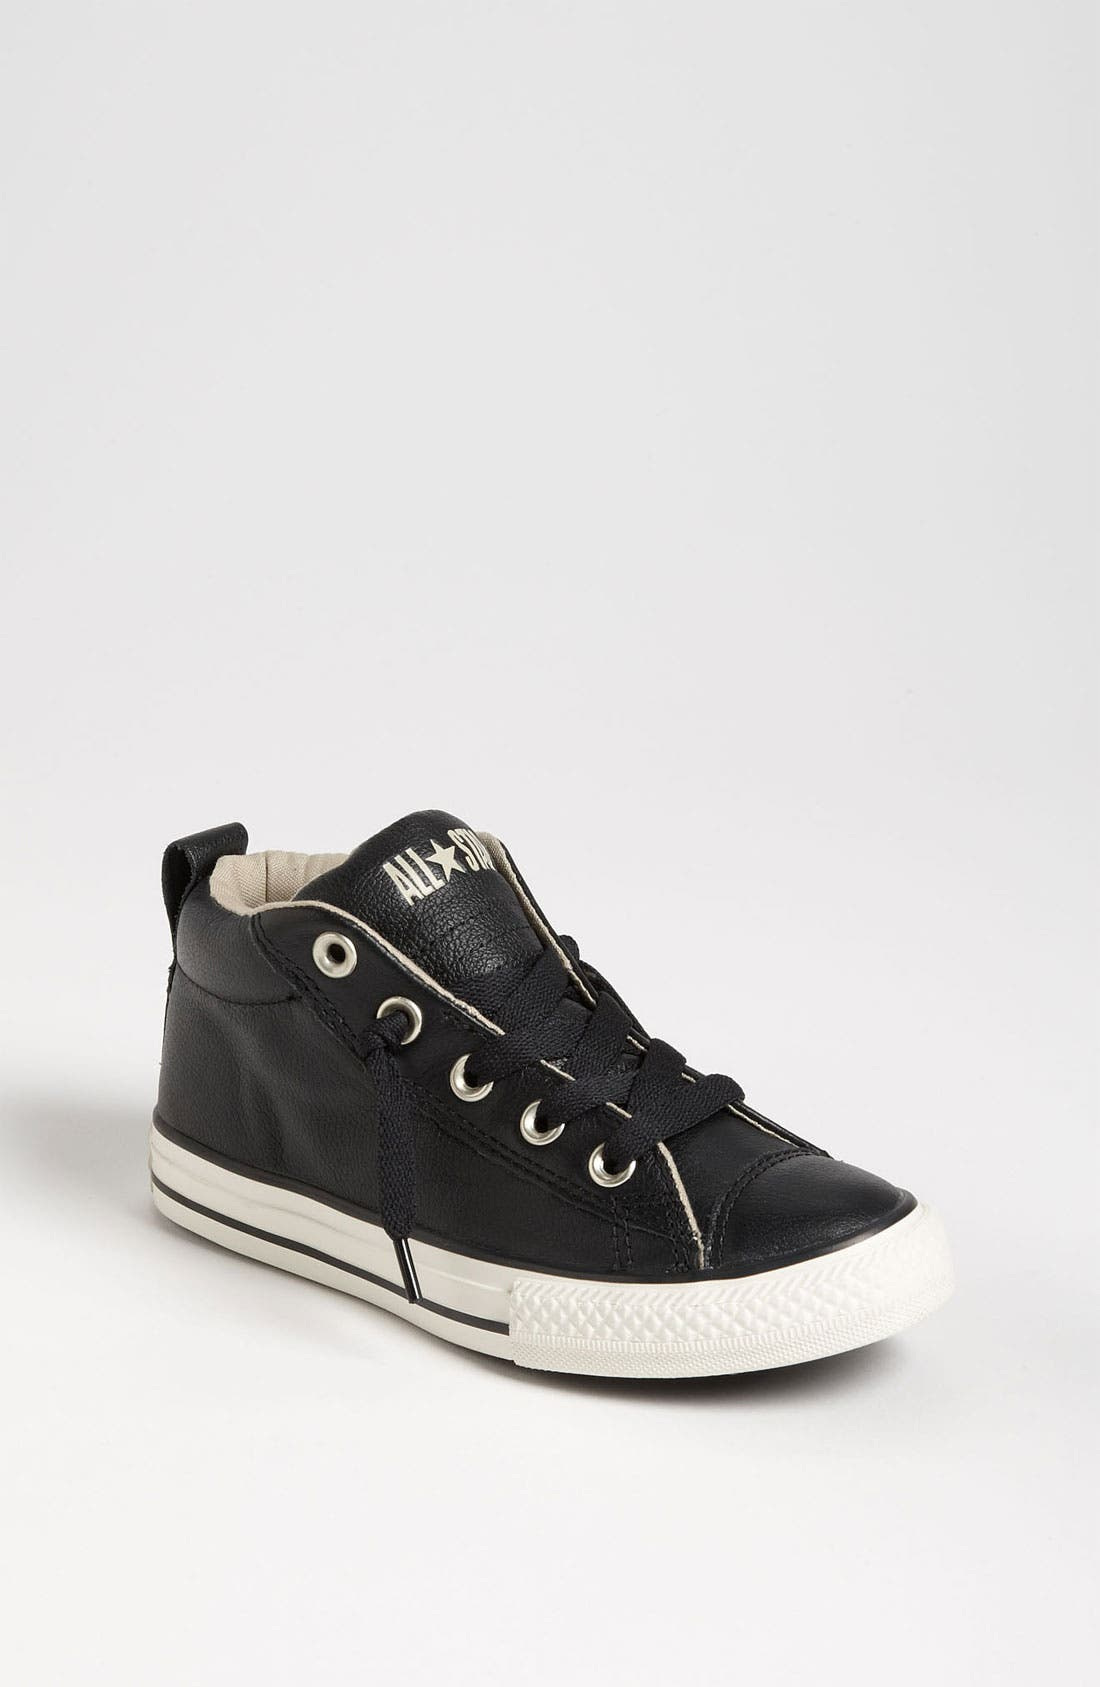 Main Image - Converse 'Street' Mid Sneaker (Toddler, Little Kid & Big Kid)